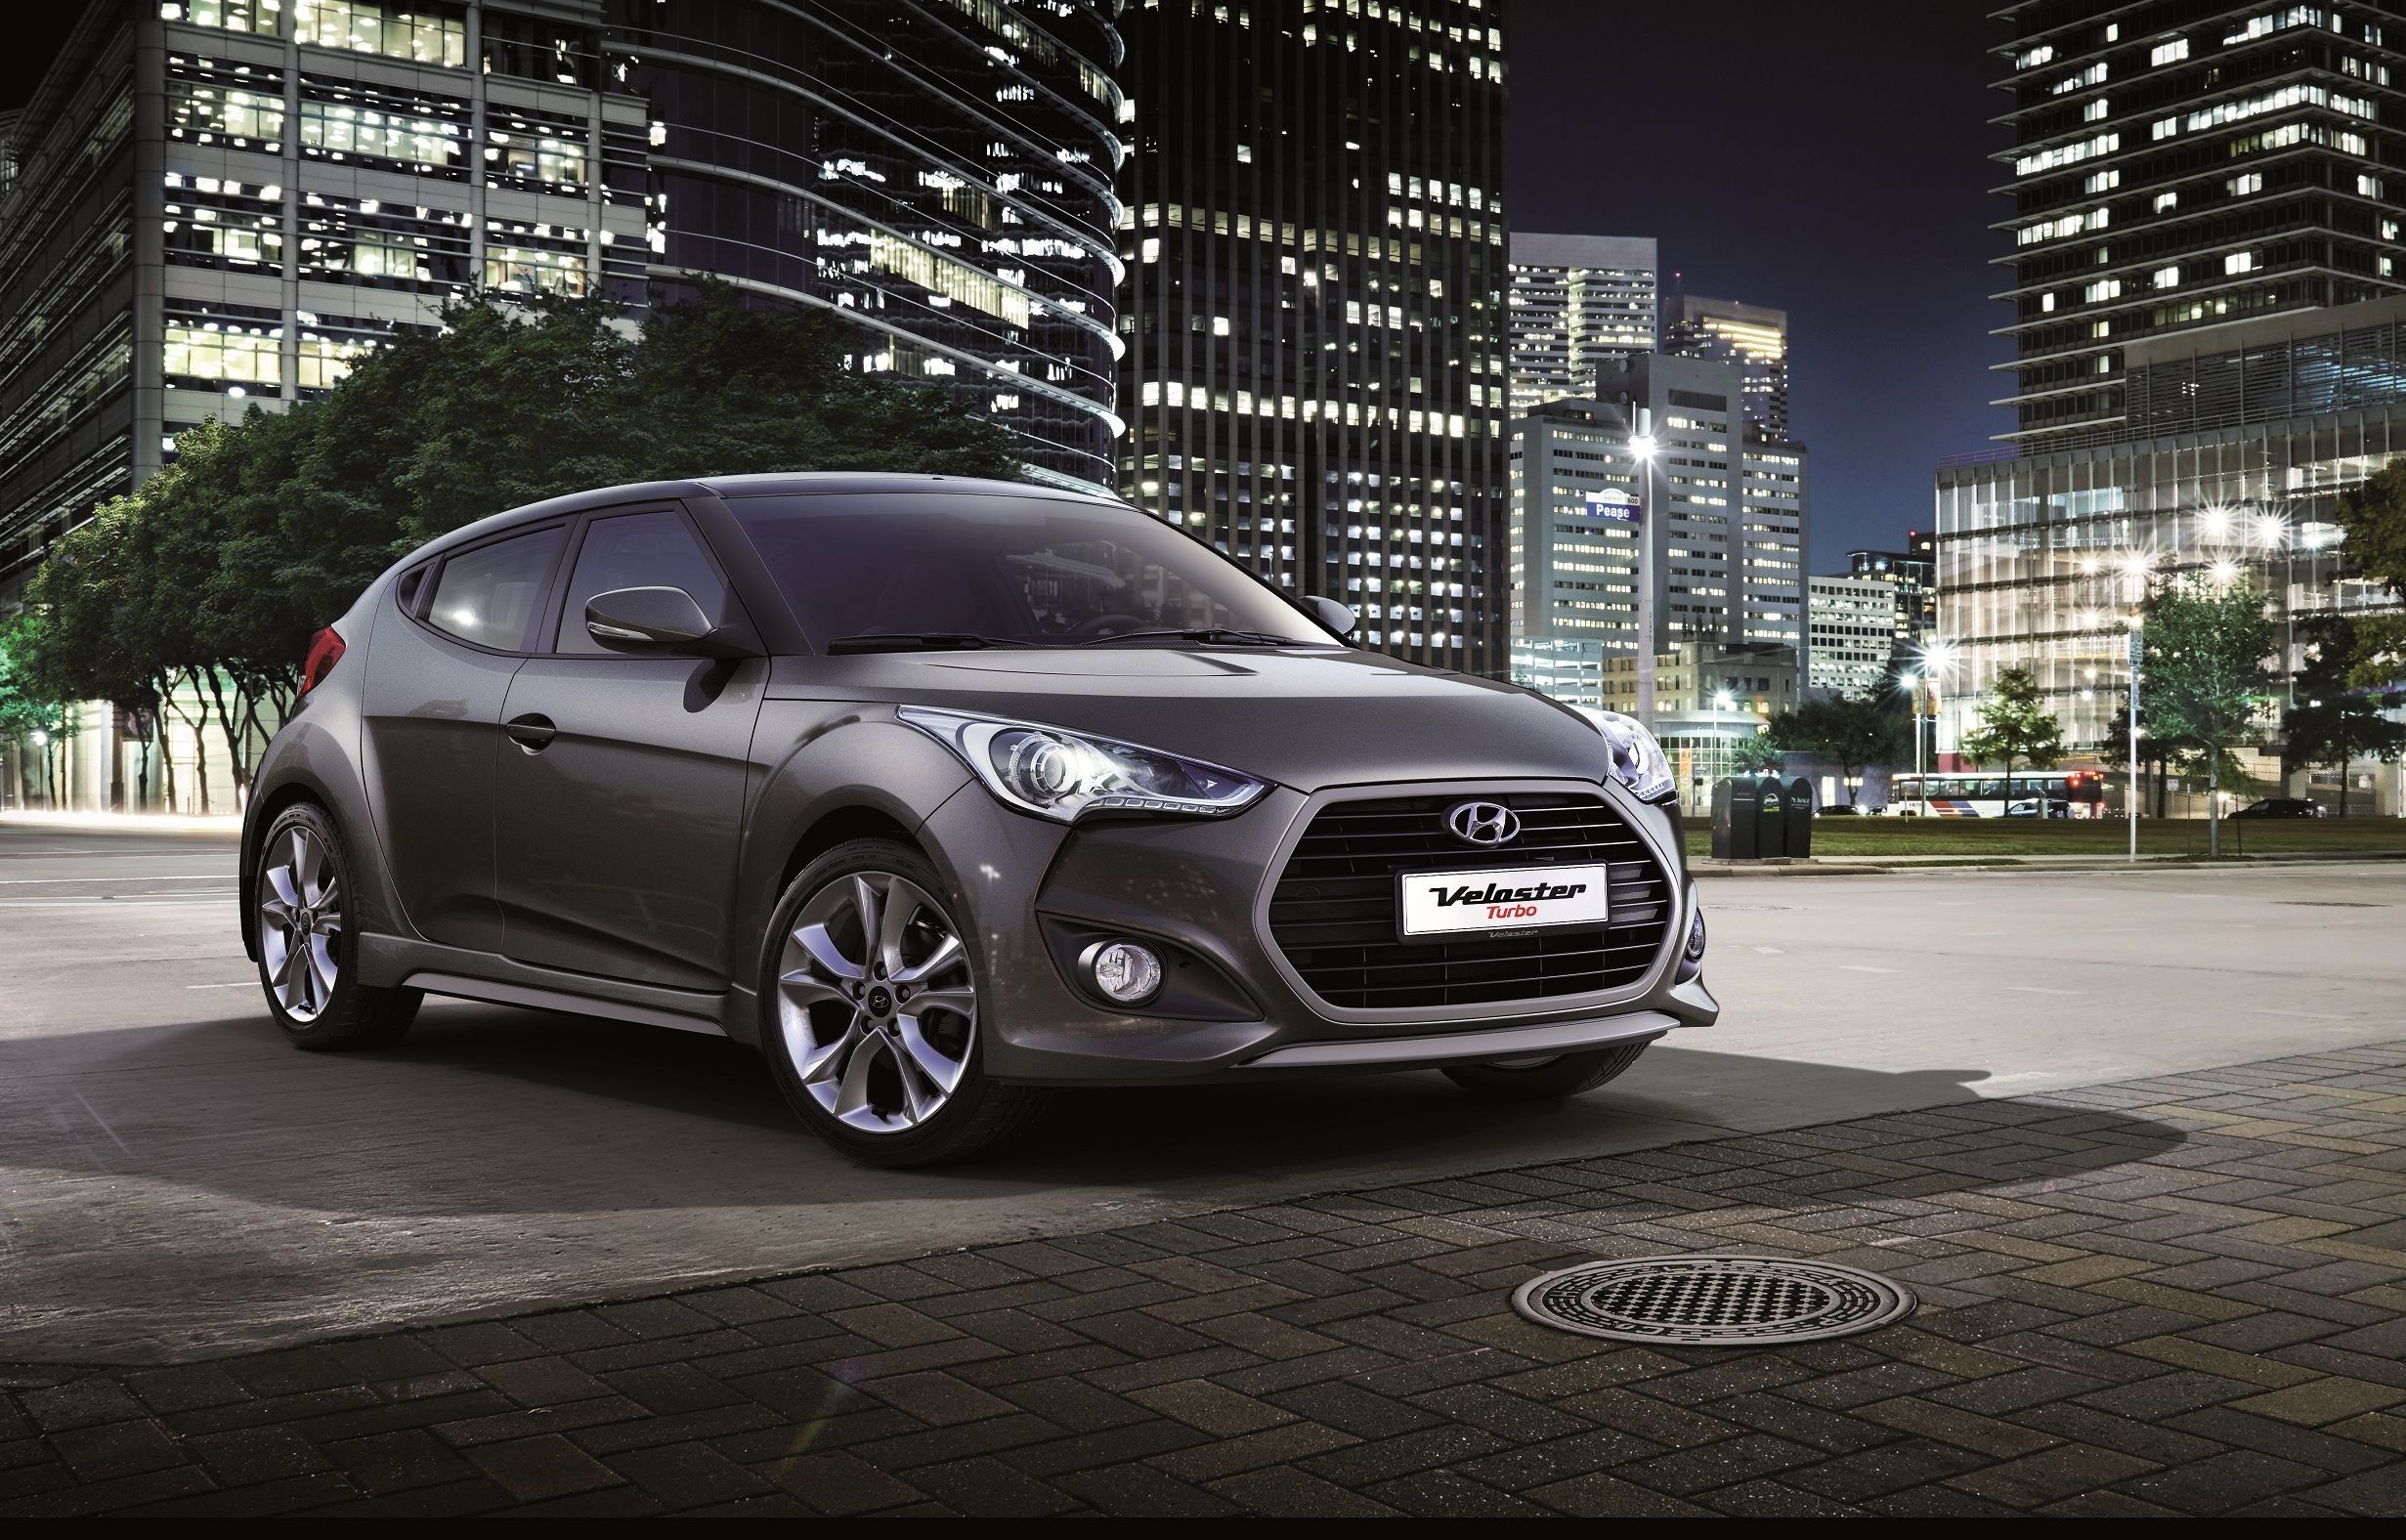 Hyundai Veloster Wallpaper Hd Resolution Mtb Hyundai Veloster